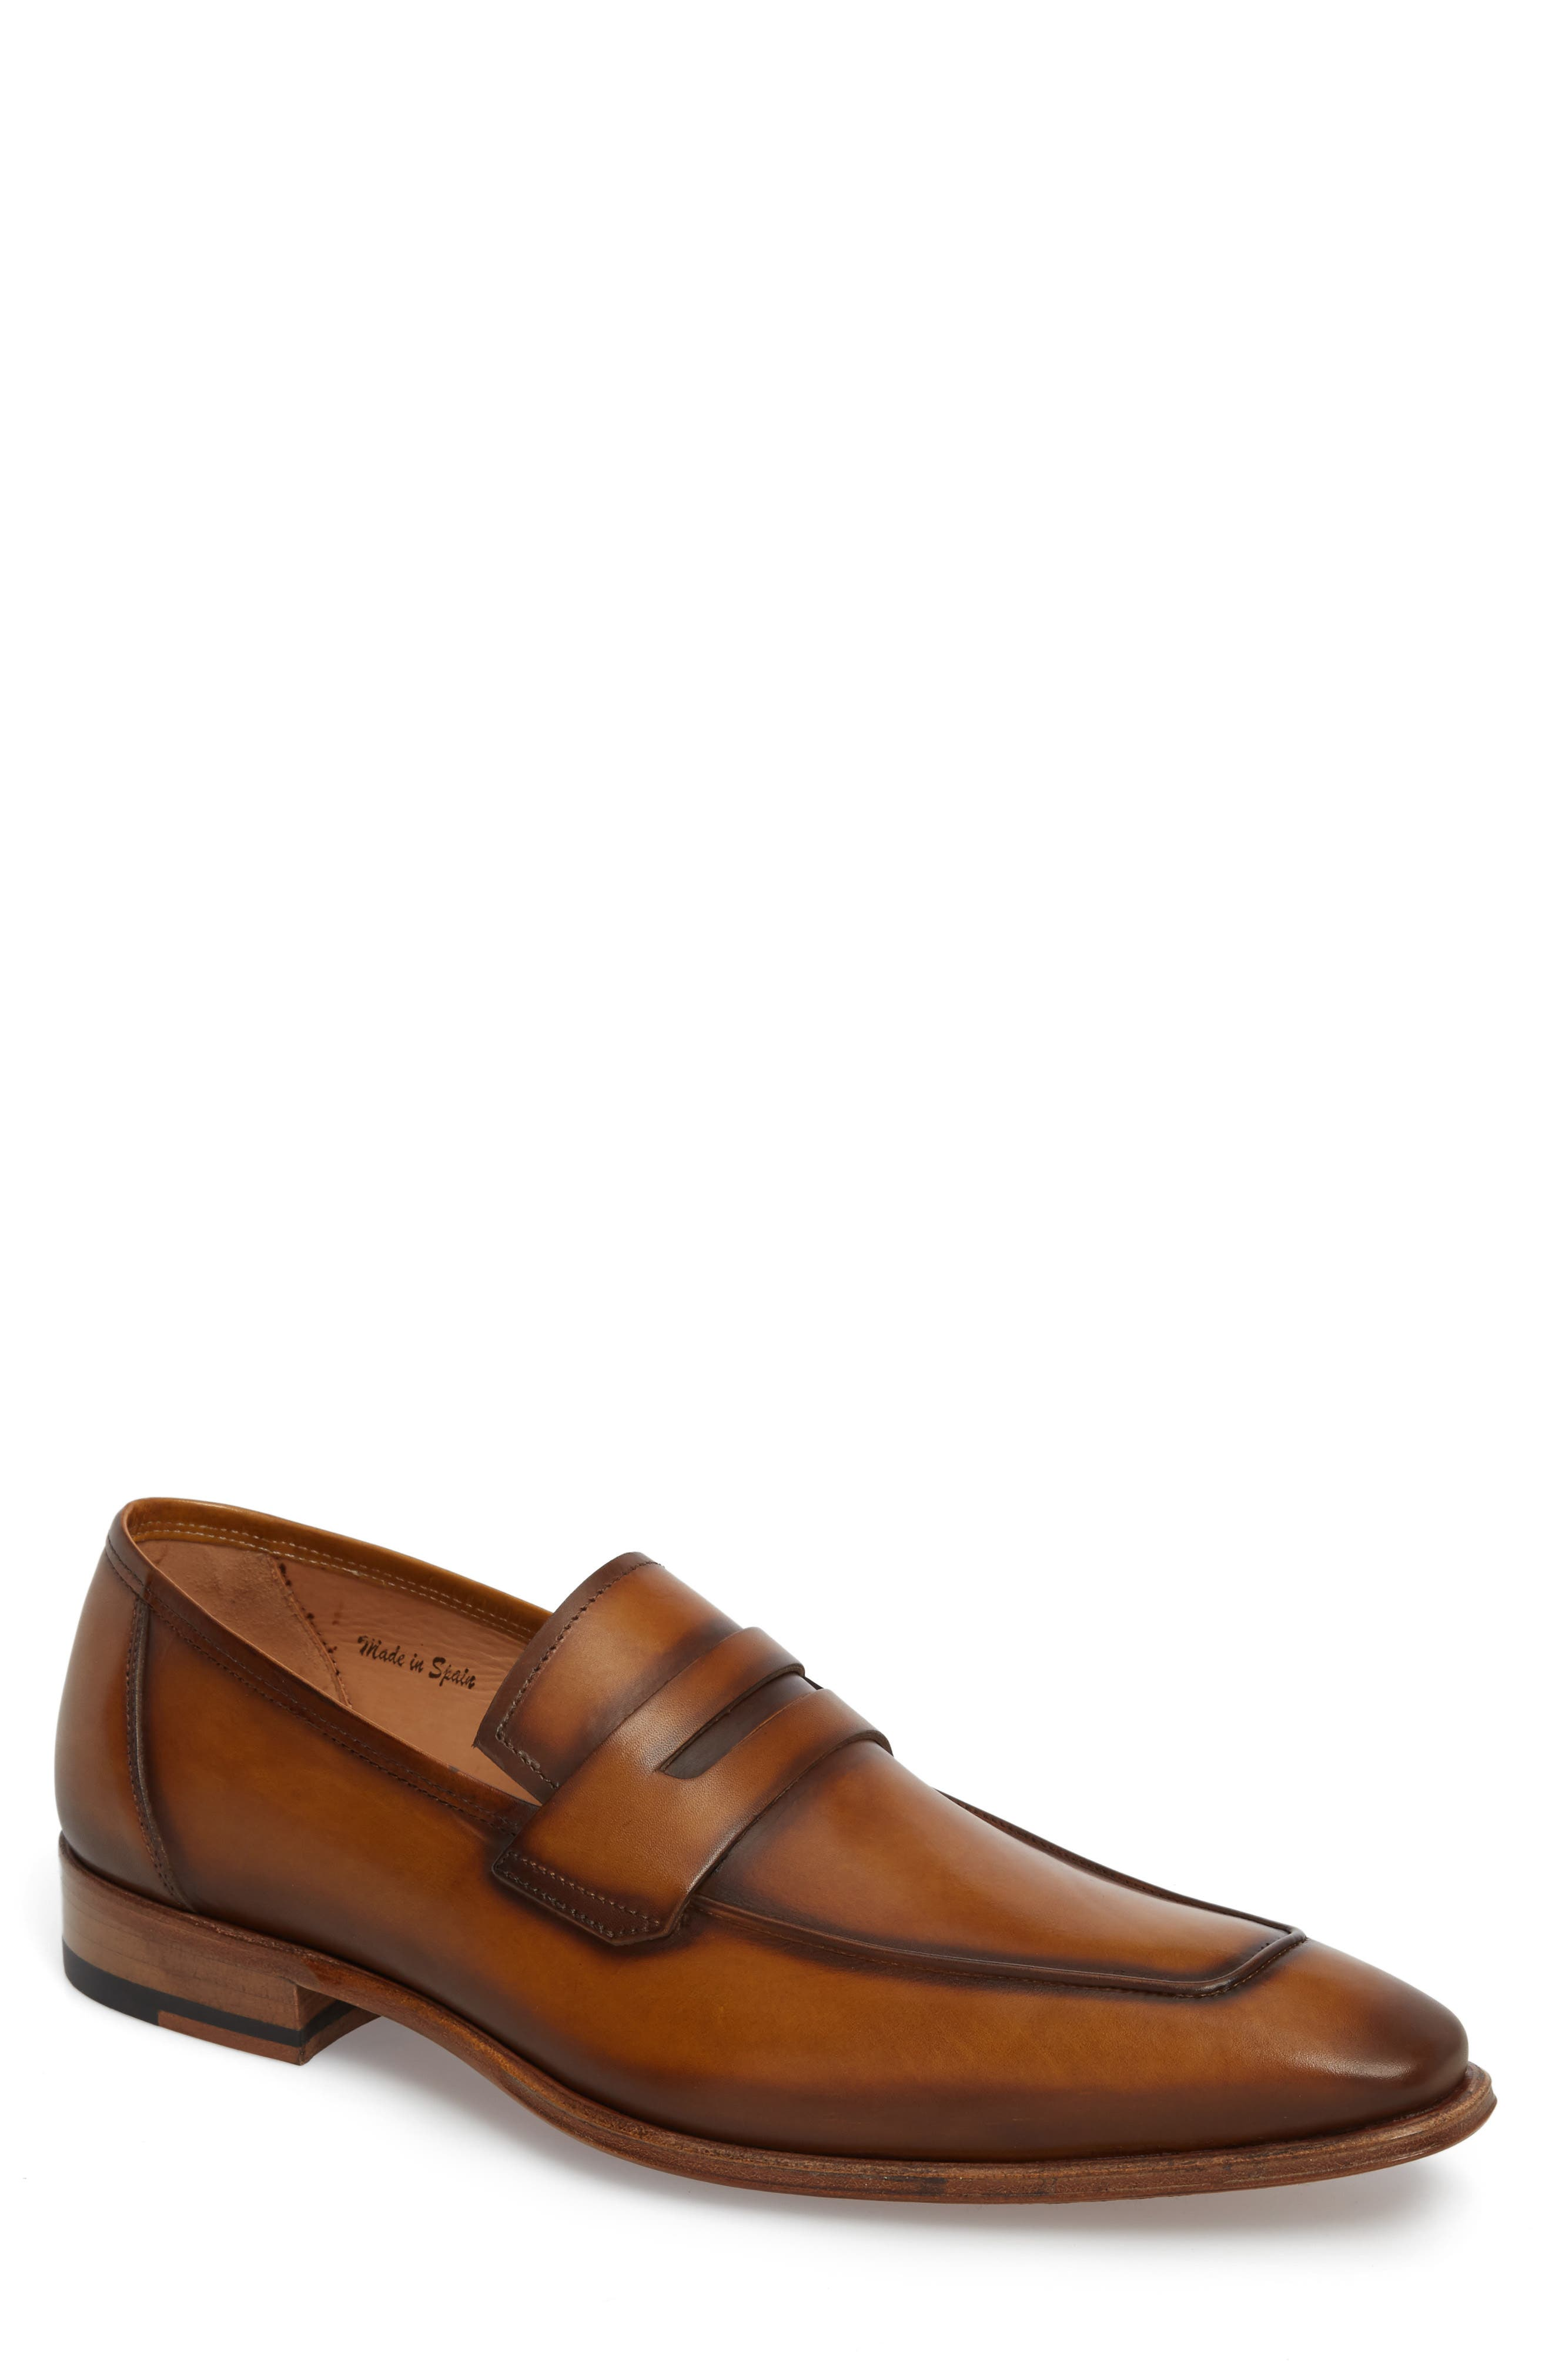 Marcus Penny Loafer,                         Main,                         color, 212